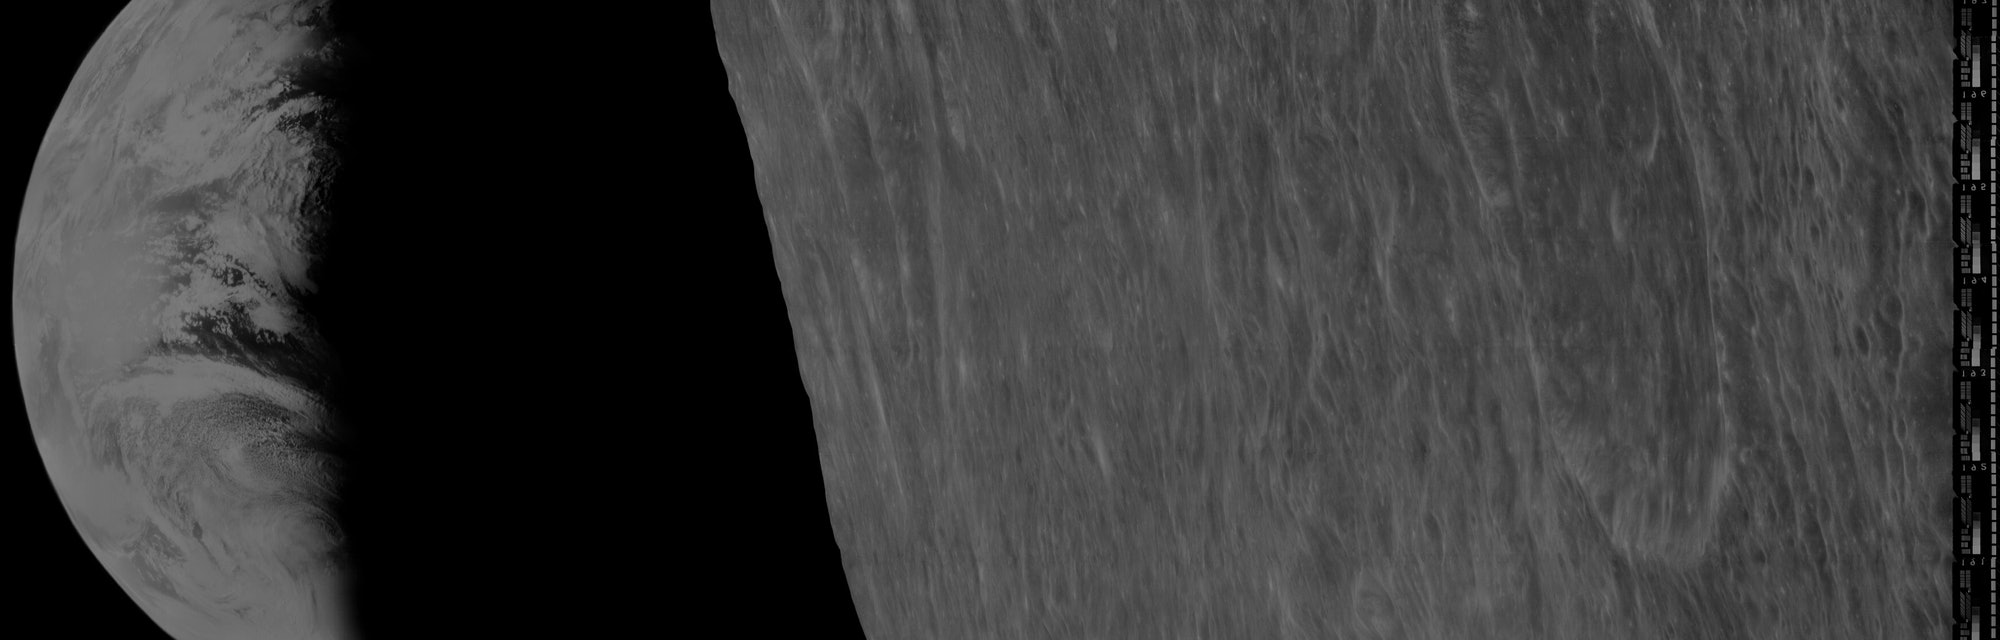 The 1966 Earthrise photographed by the Lunar Orbiter 1 spacecraft as reprocessed by the Lunar Orbite...